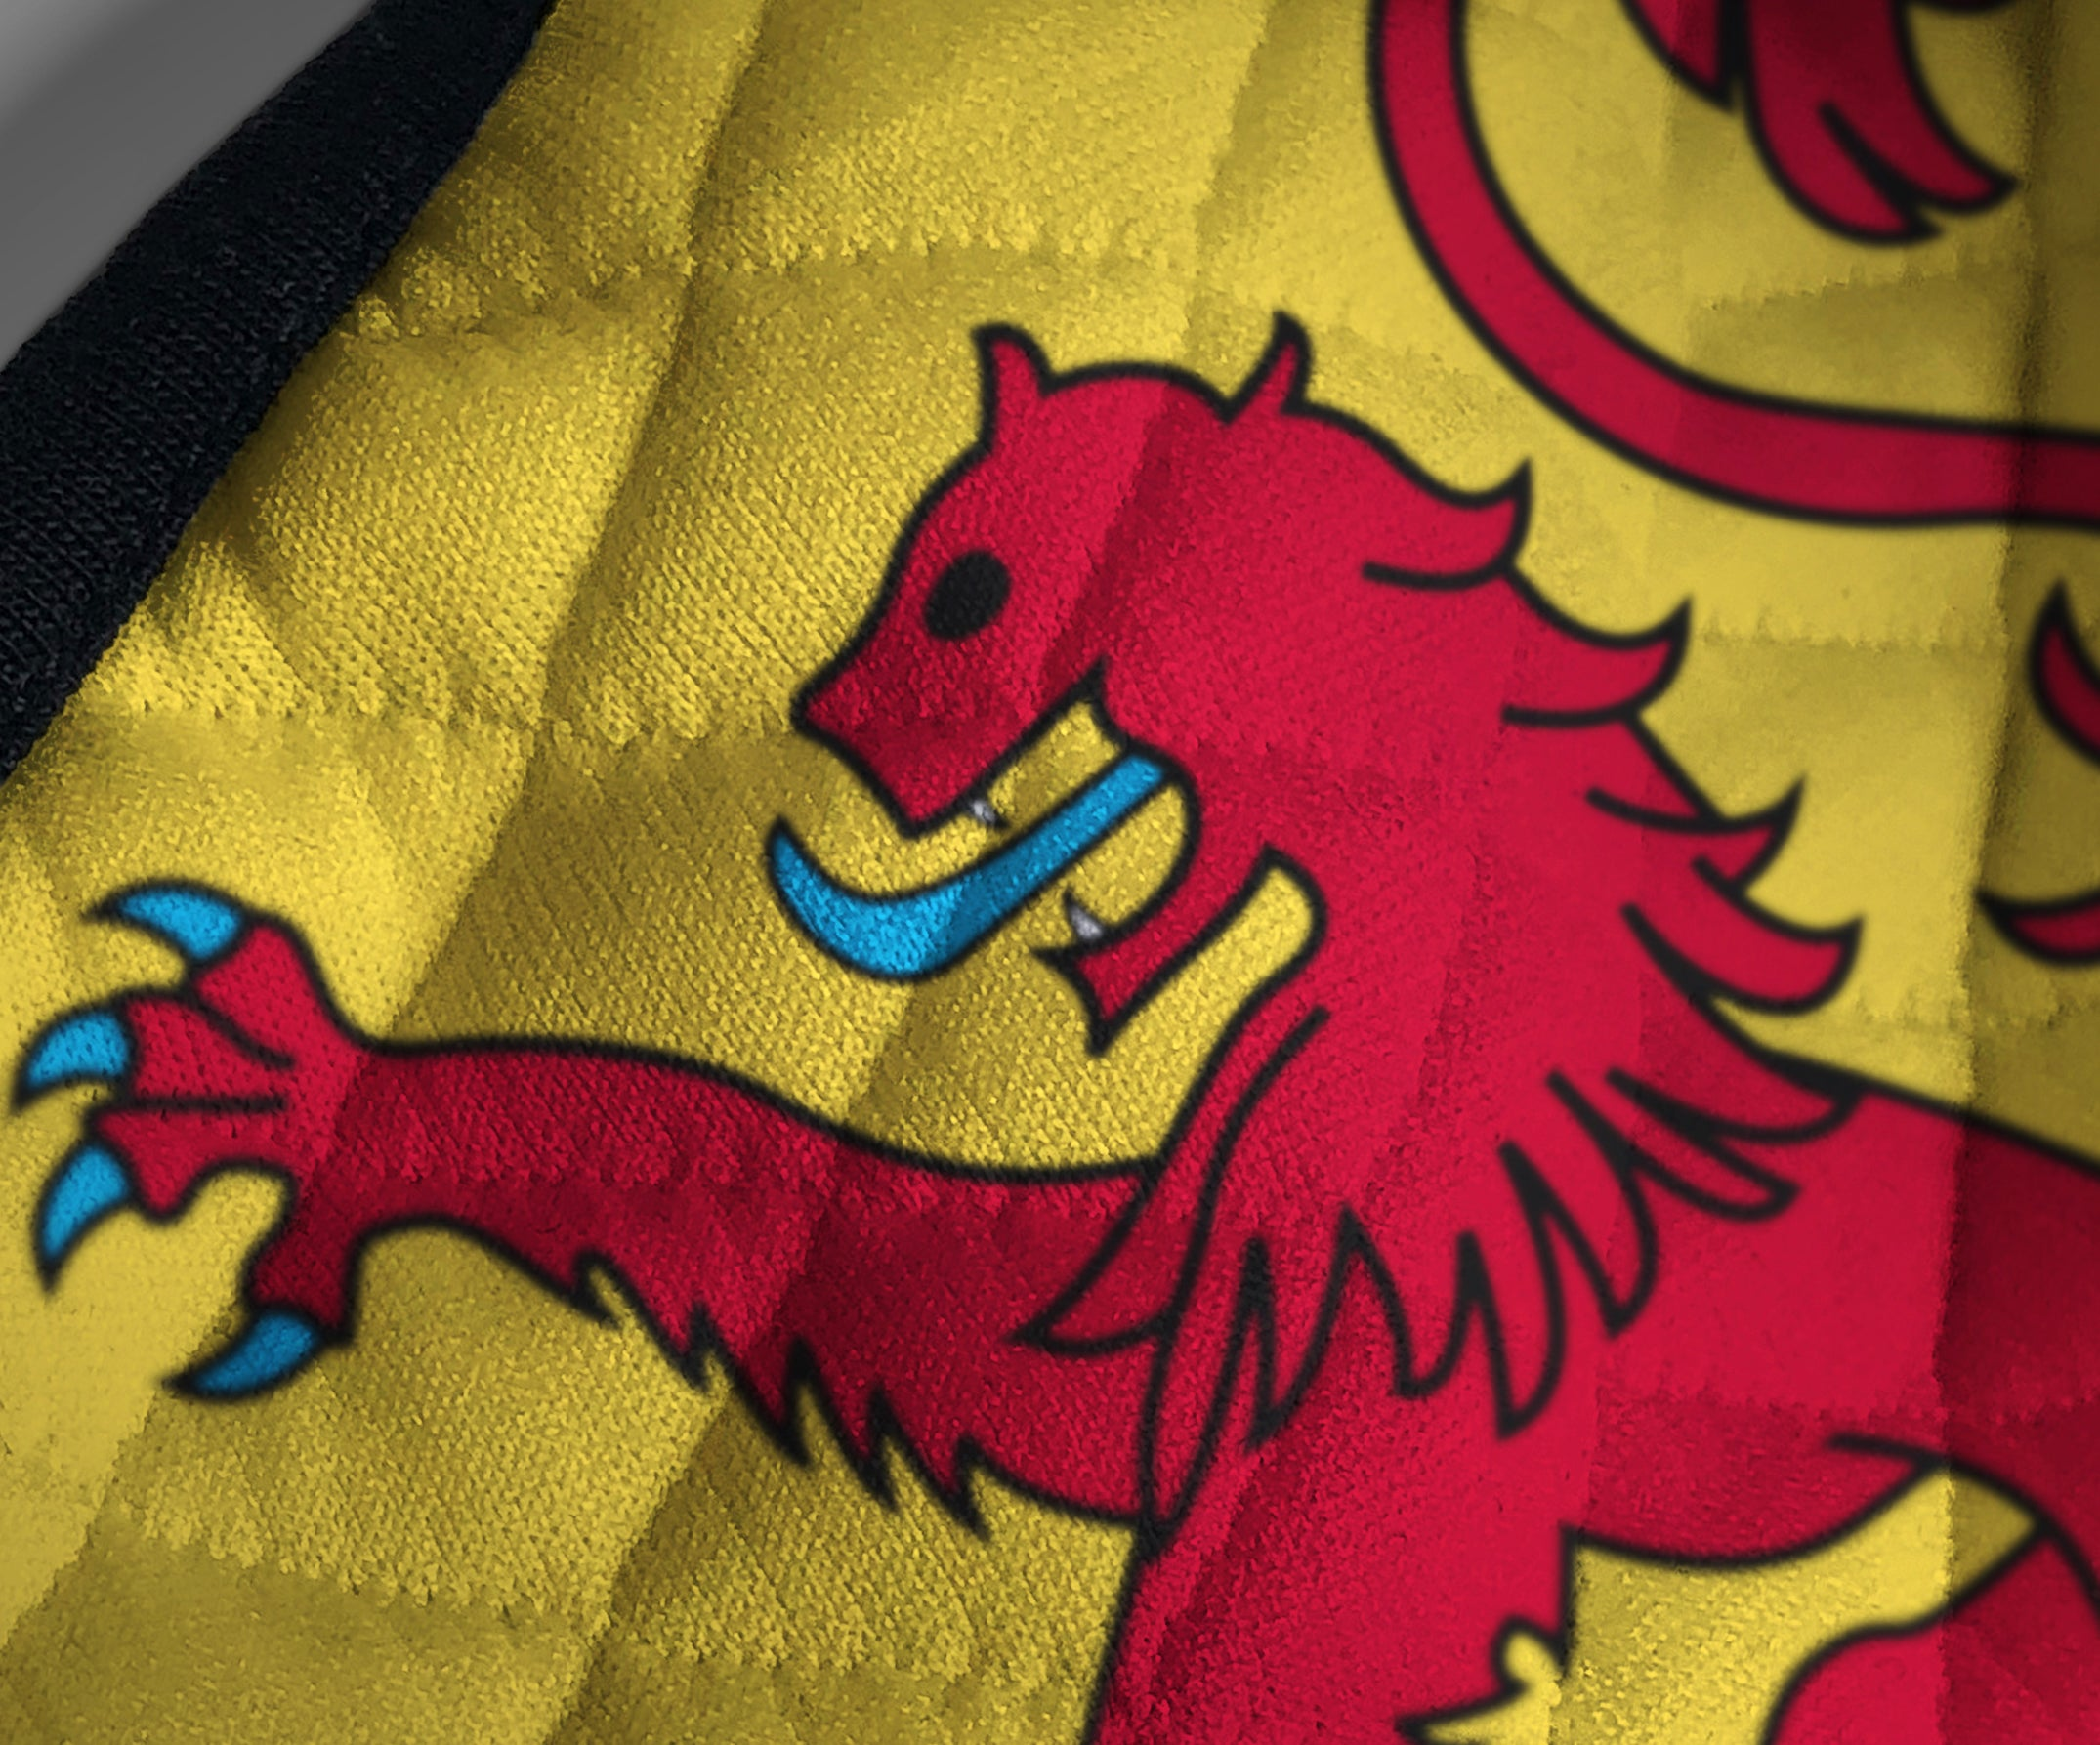 Contoured Face Mask - face covering - Nicola Sturgeon - Scottish Lion Rampant Royal Standard of Scotland - by Steven Patrick Sim the Tartan Artisan - Stevie Tartan Guy - printed fabric 1 - extra large